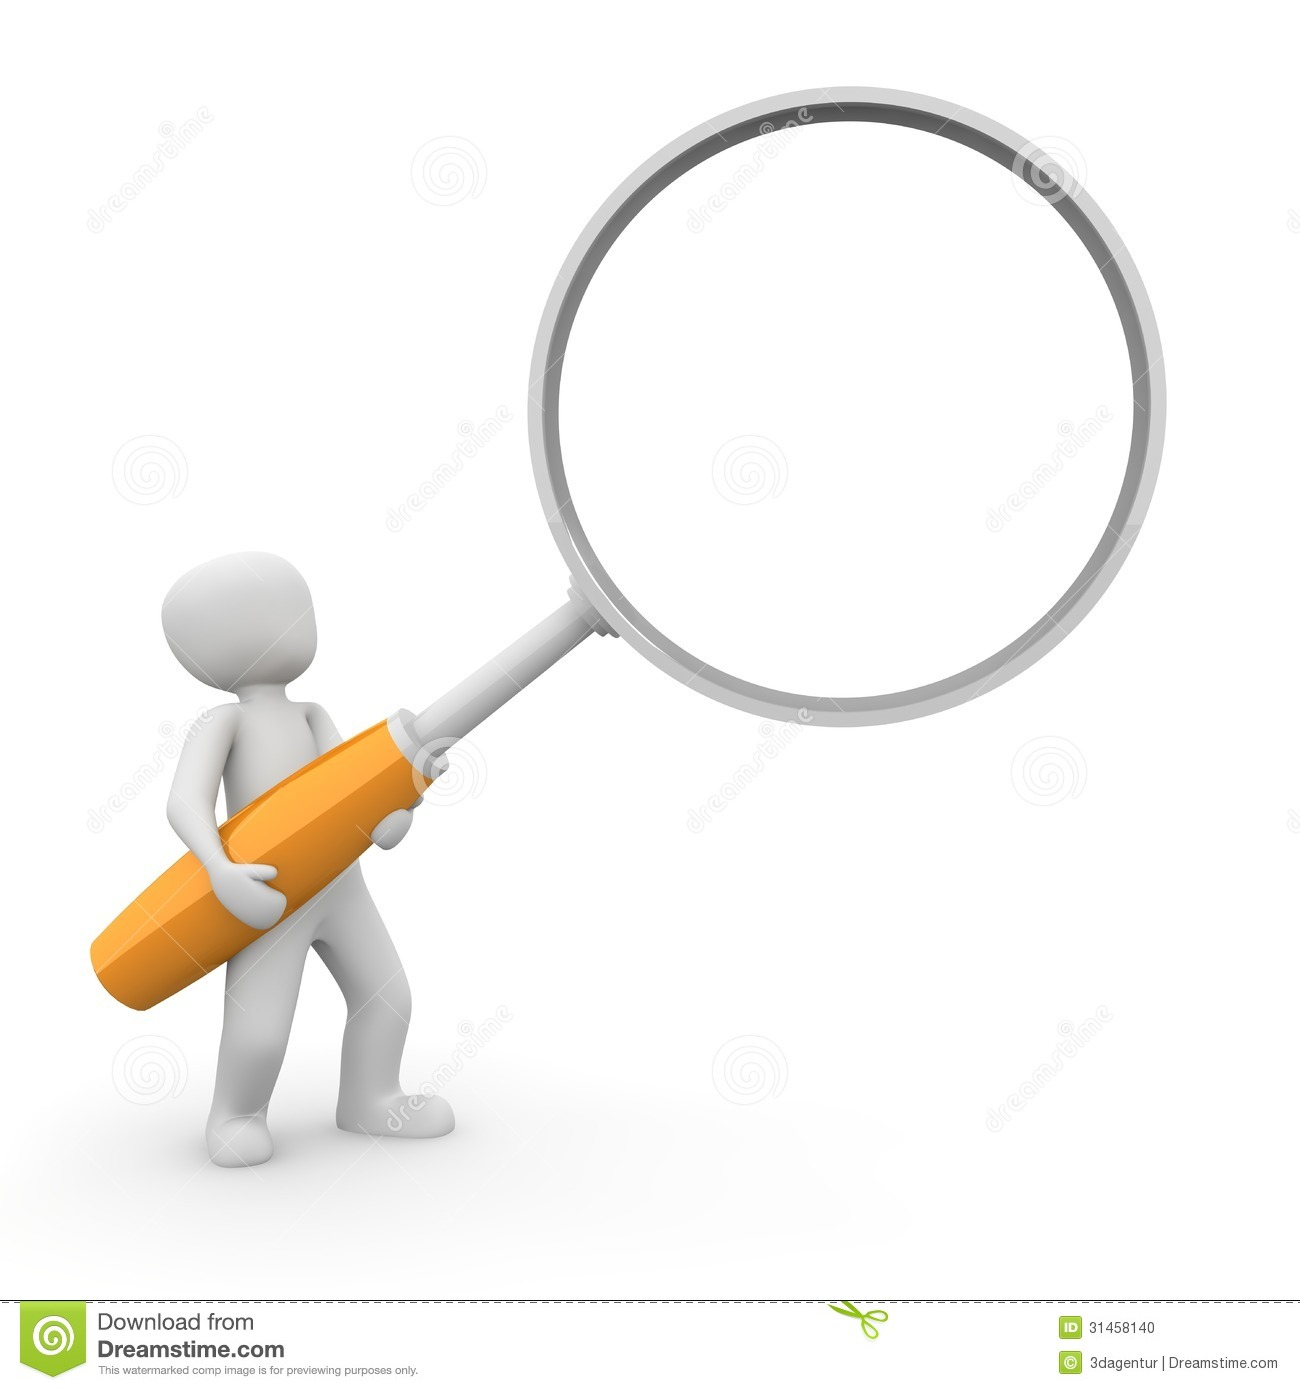 ... magnifying glass in hands to enlarge slightly mr no pr no 0 6627 0